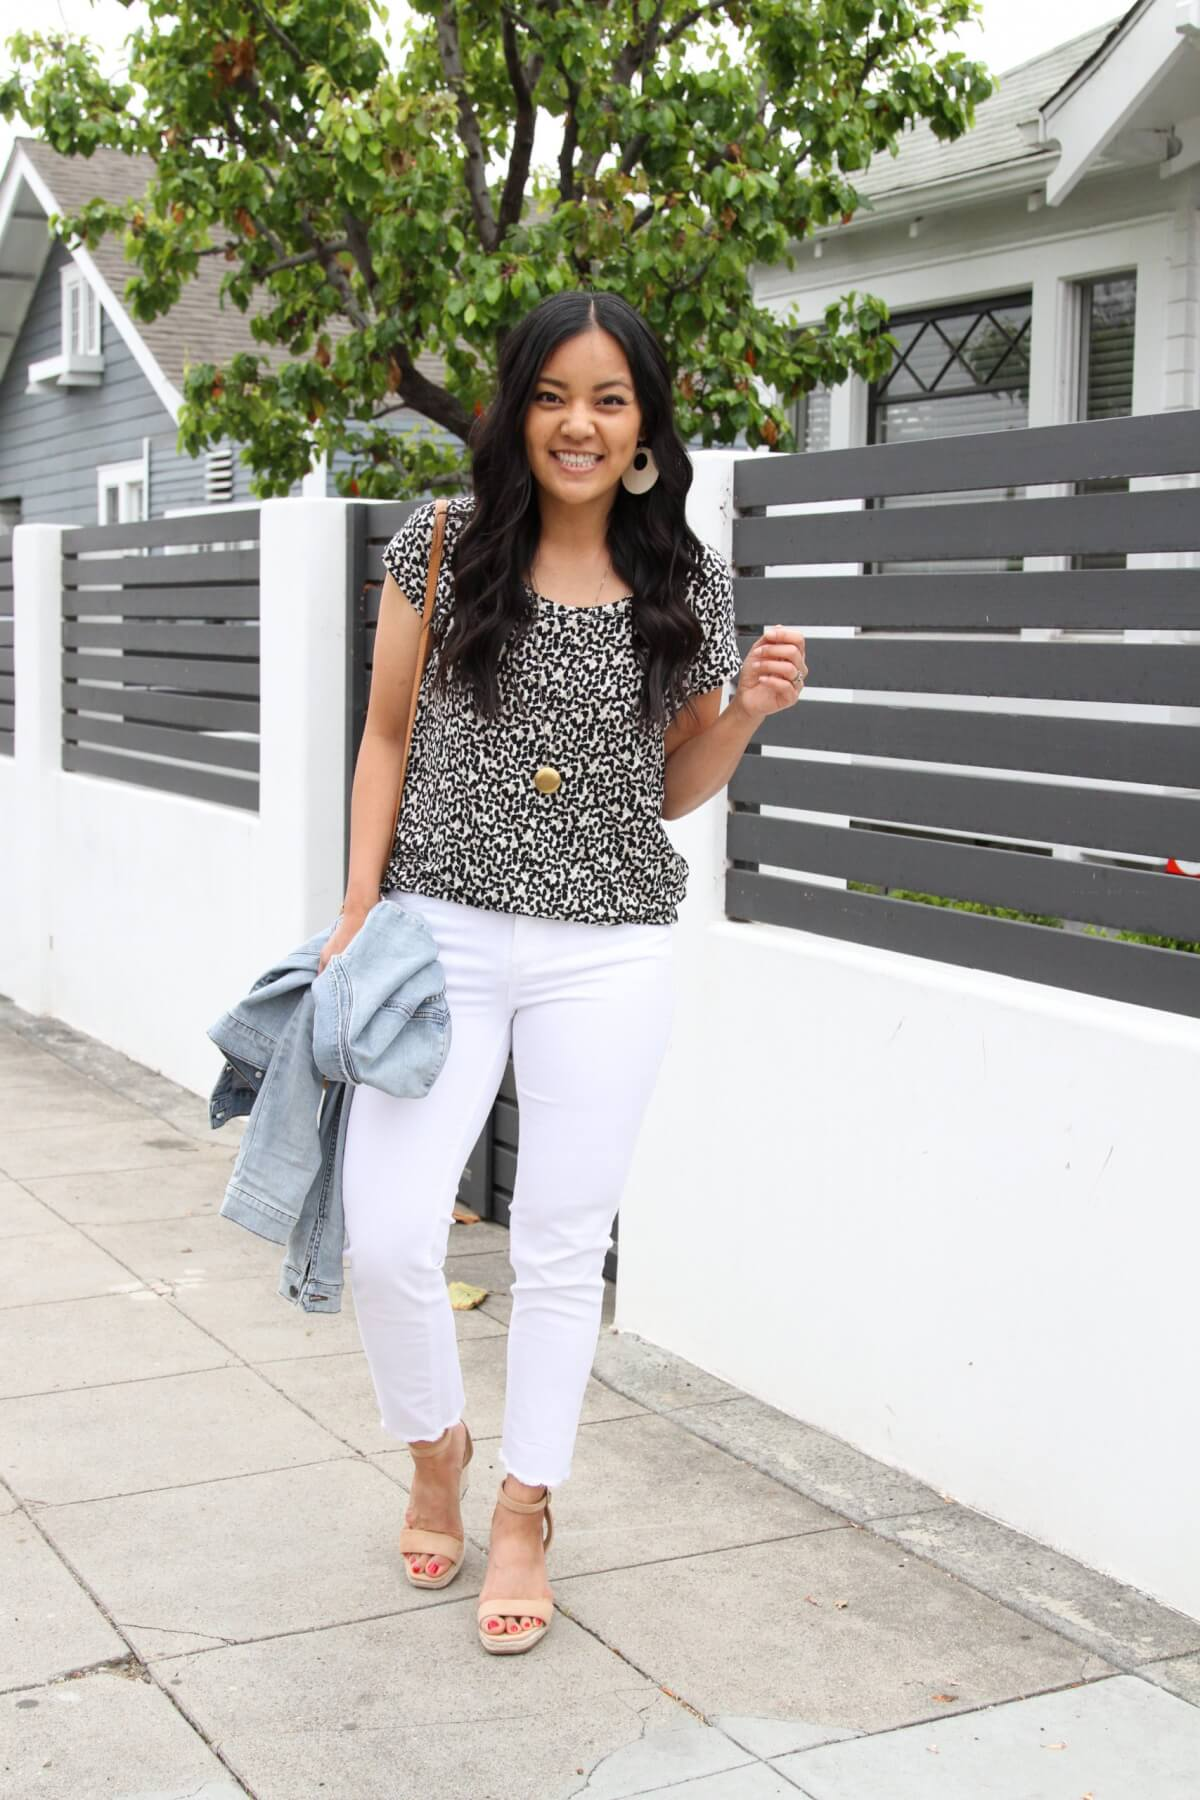 Nicer Casual Outfit: Leopard tee + white jeans + denim jacket + nude wedges + white earrings + pendant necklace + cognac crossbody bag